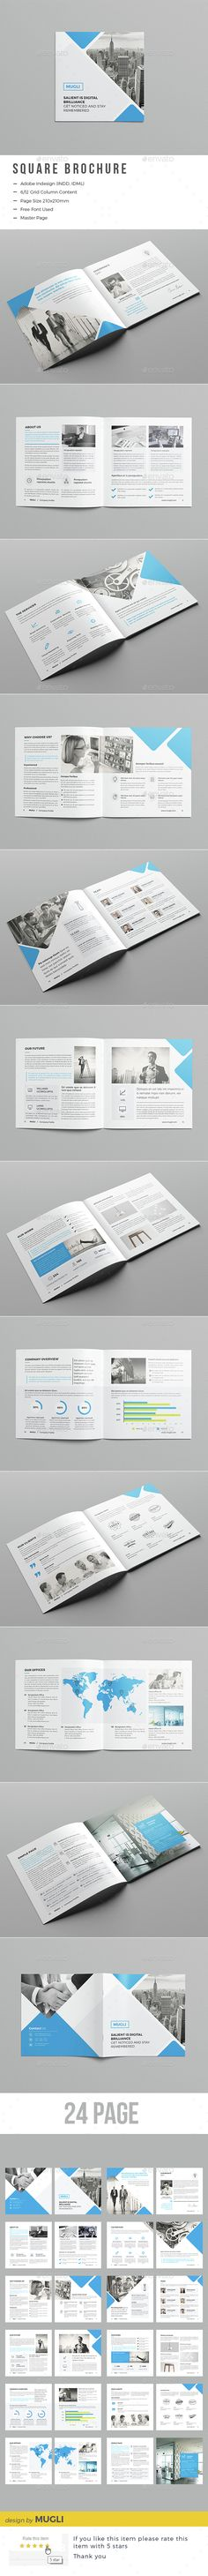 24 Pages Corporate Square Brochure Template InDesign INDD. Download here: http://graphicriver.net/item/corporate-square-brochure/15342062?ref=ksioks